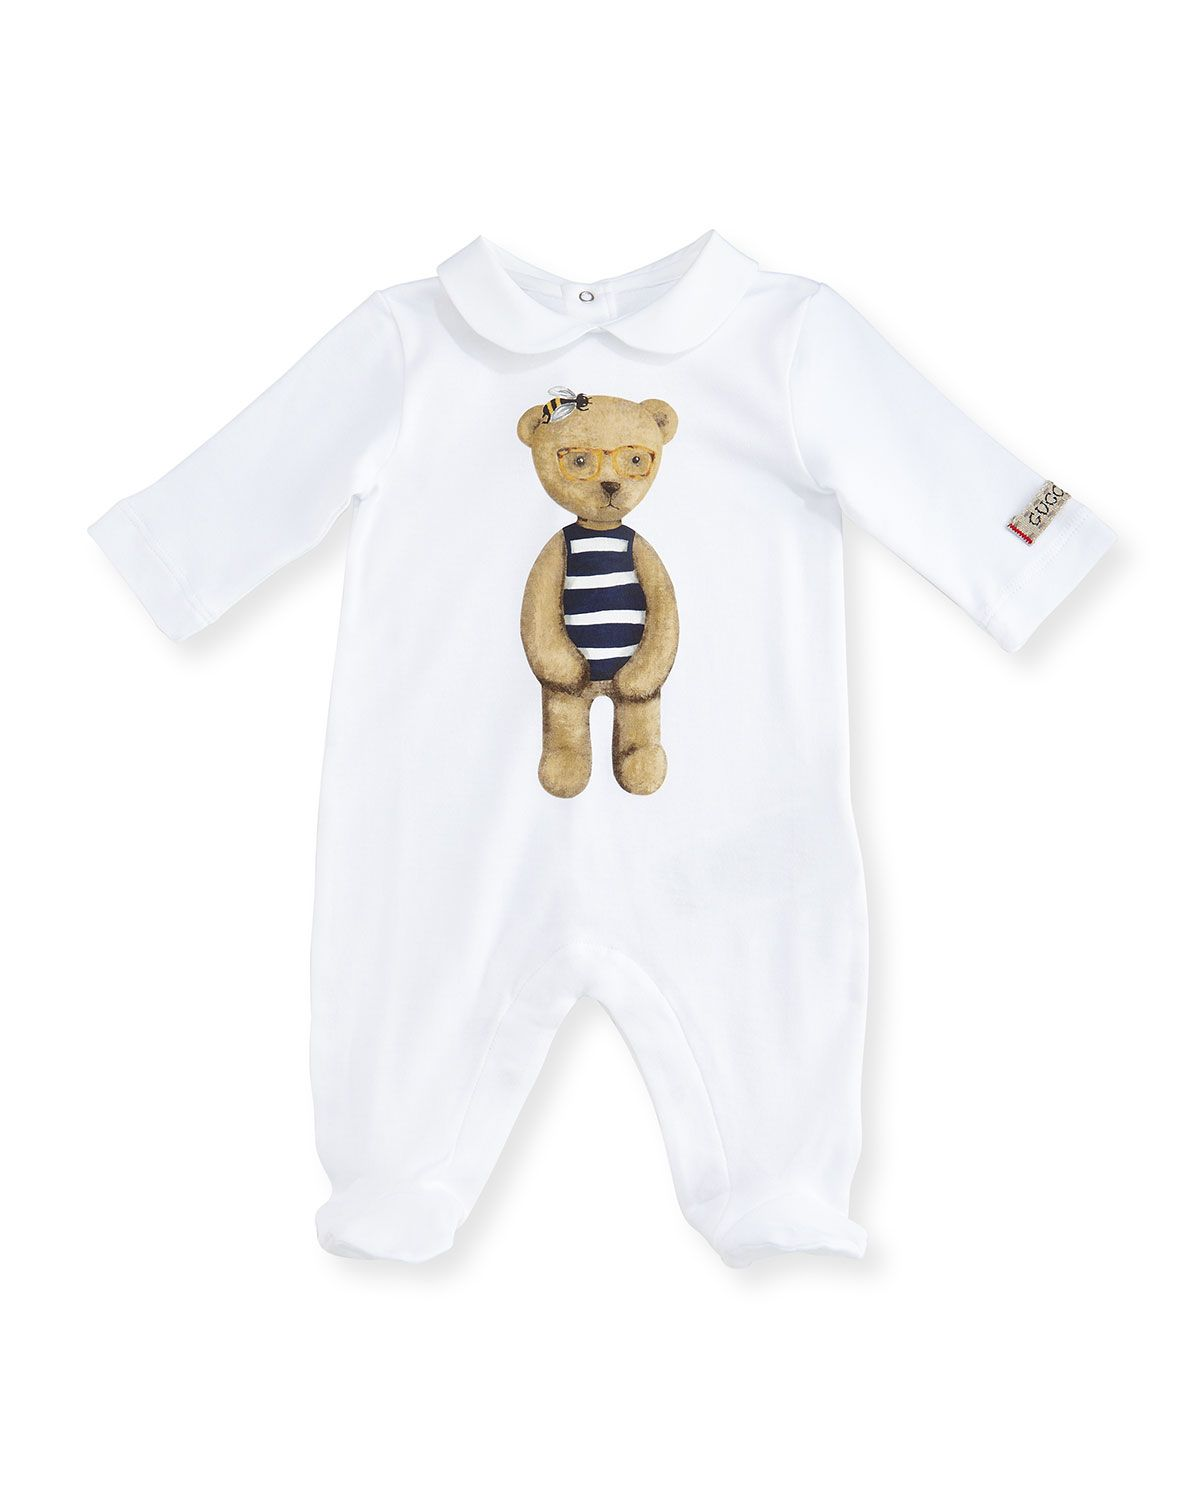 fd3251d70 Gucci Collared Teddy Bear Footie Pajamas, White/Blue, Size 0-12 Months,  Size: 6-9 Months